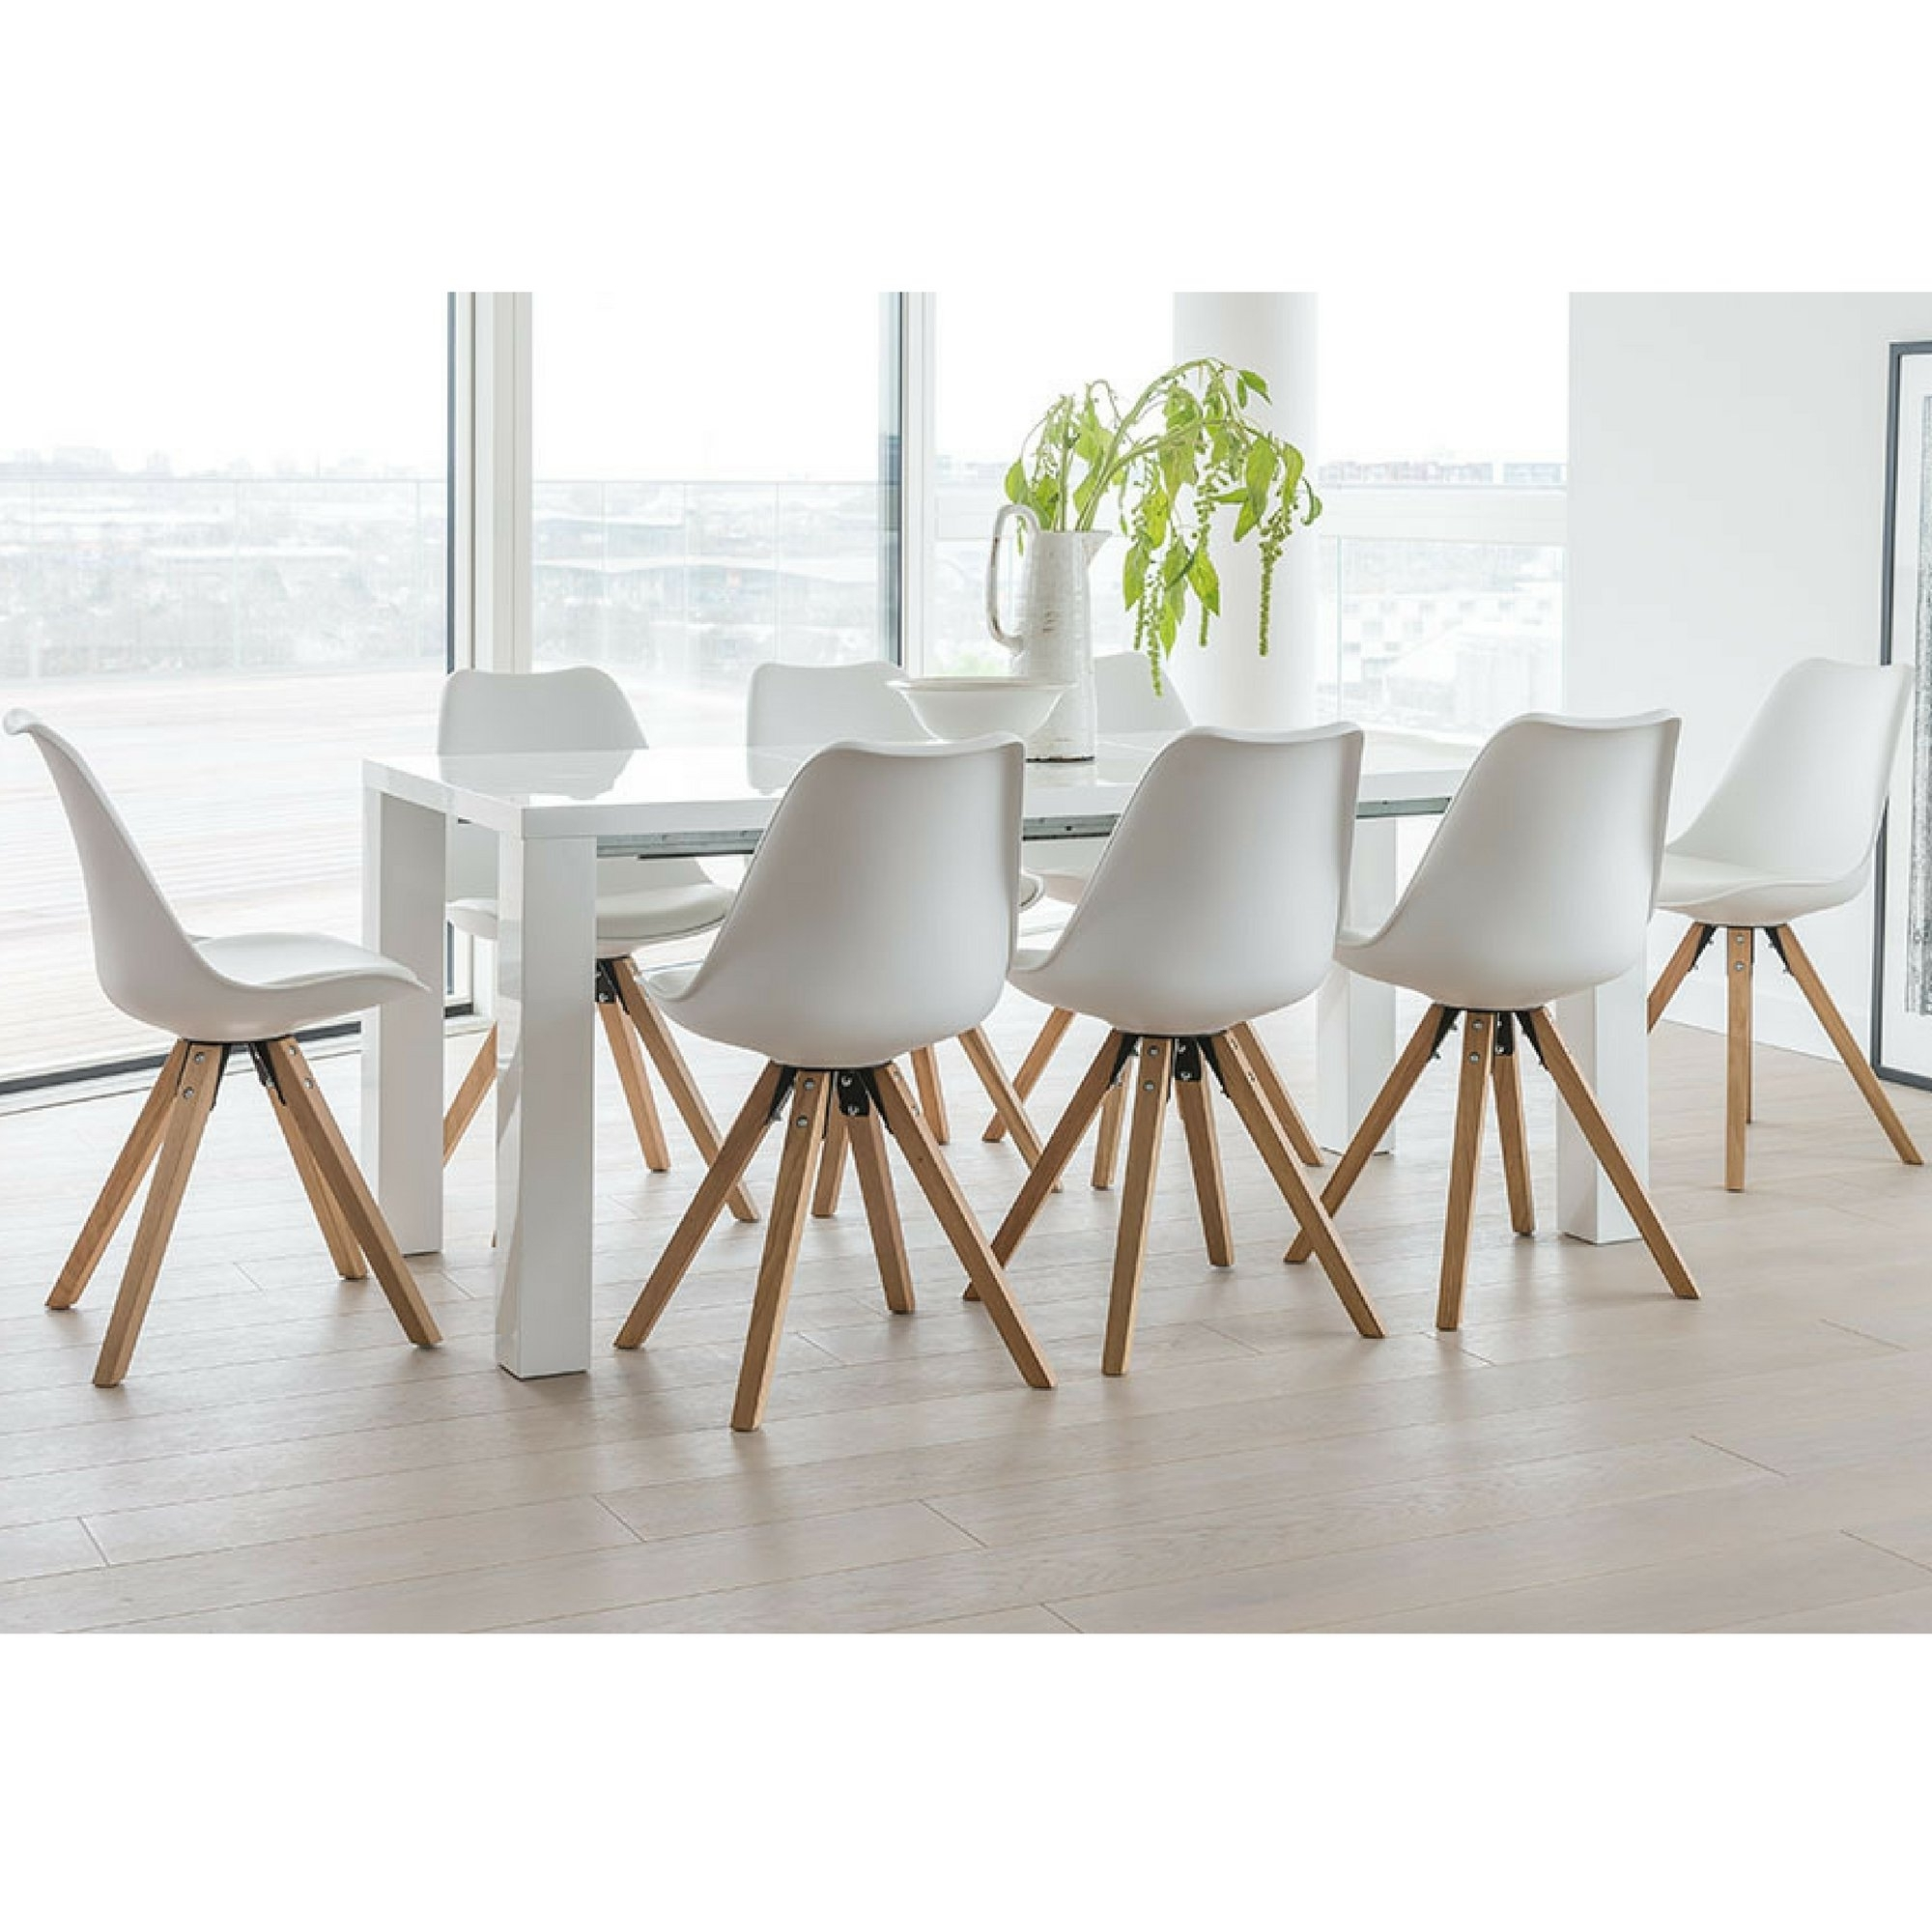 Most Popular Dining Tables And 8 Chairs With Regard To Norden Home Billie Extendable Dining Set With 8 Chairs (View 17 of 25)